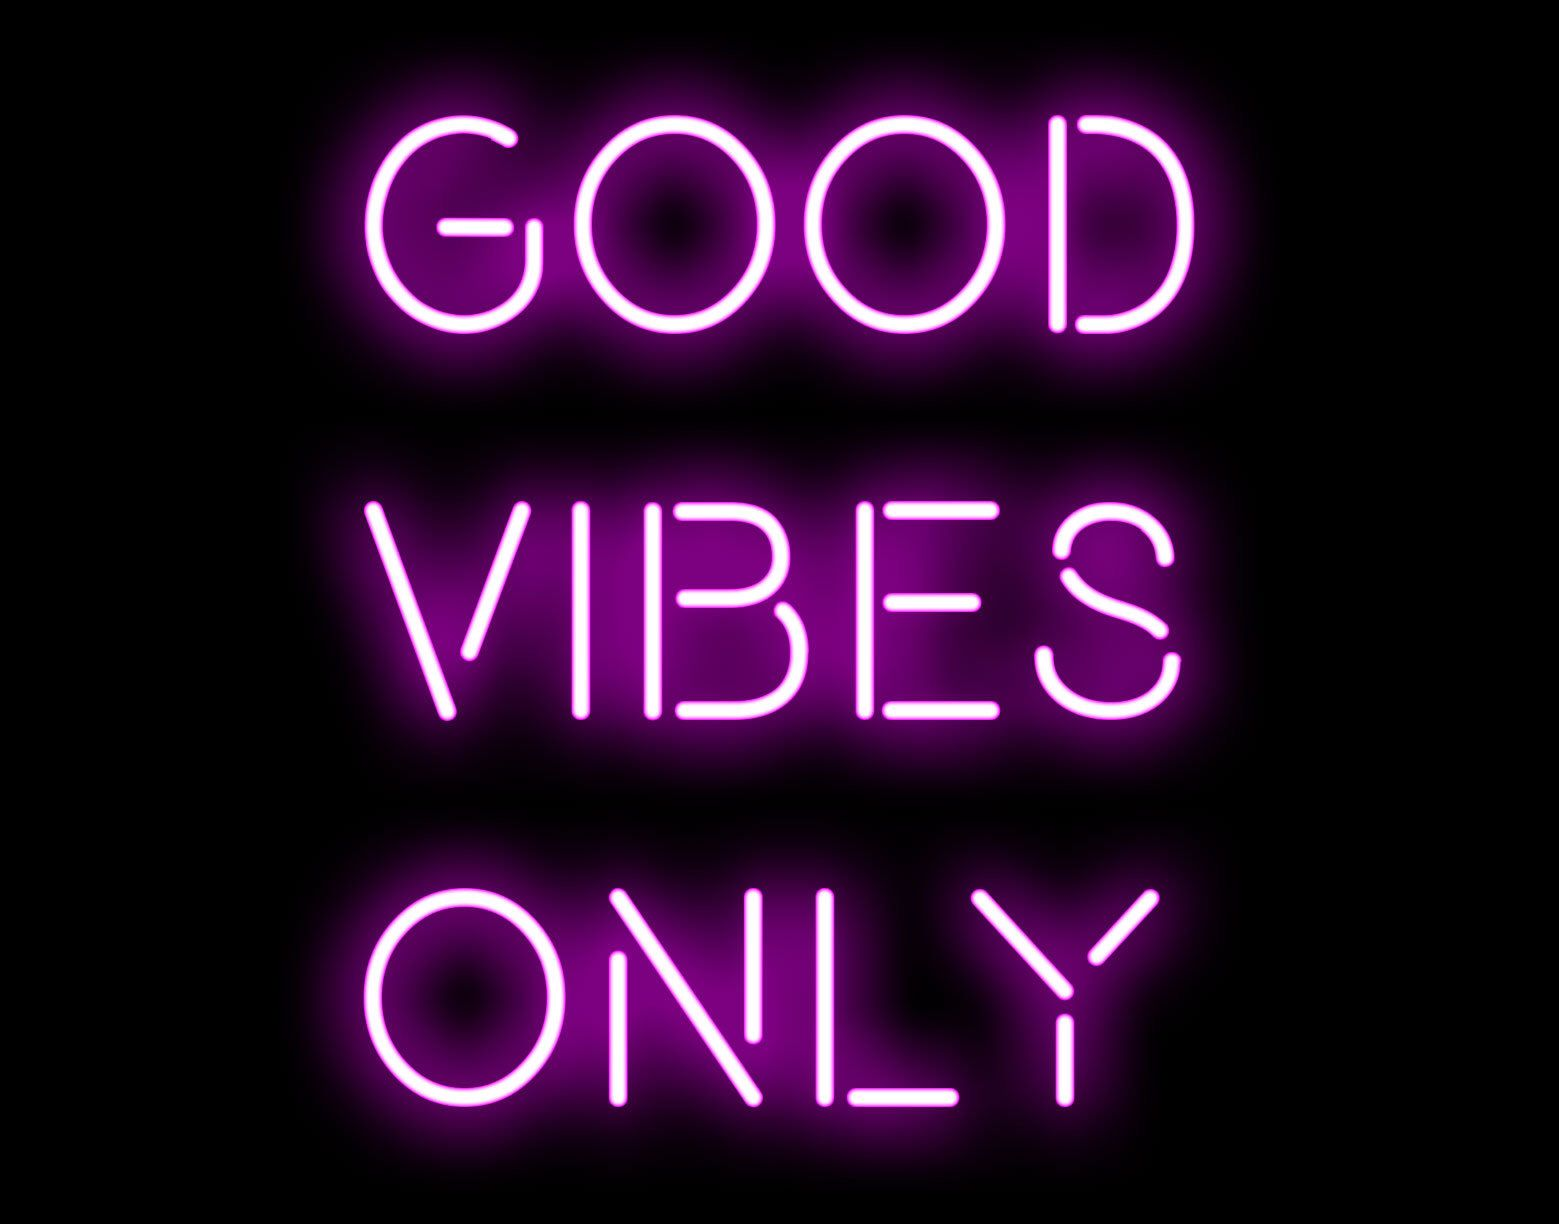 Good Vibes Only Custom Neon Sign Flex Led Neon Light Sign Room Etsy In 2020 Neon Signs Custom Neon Signs Neon Light Signs